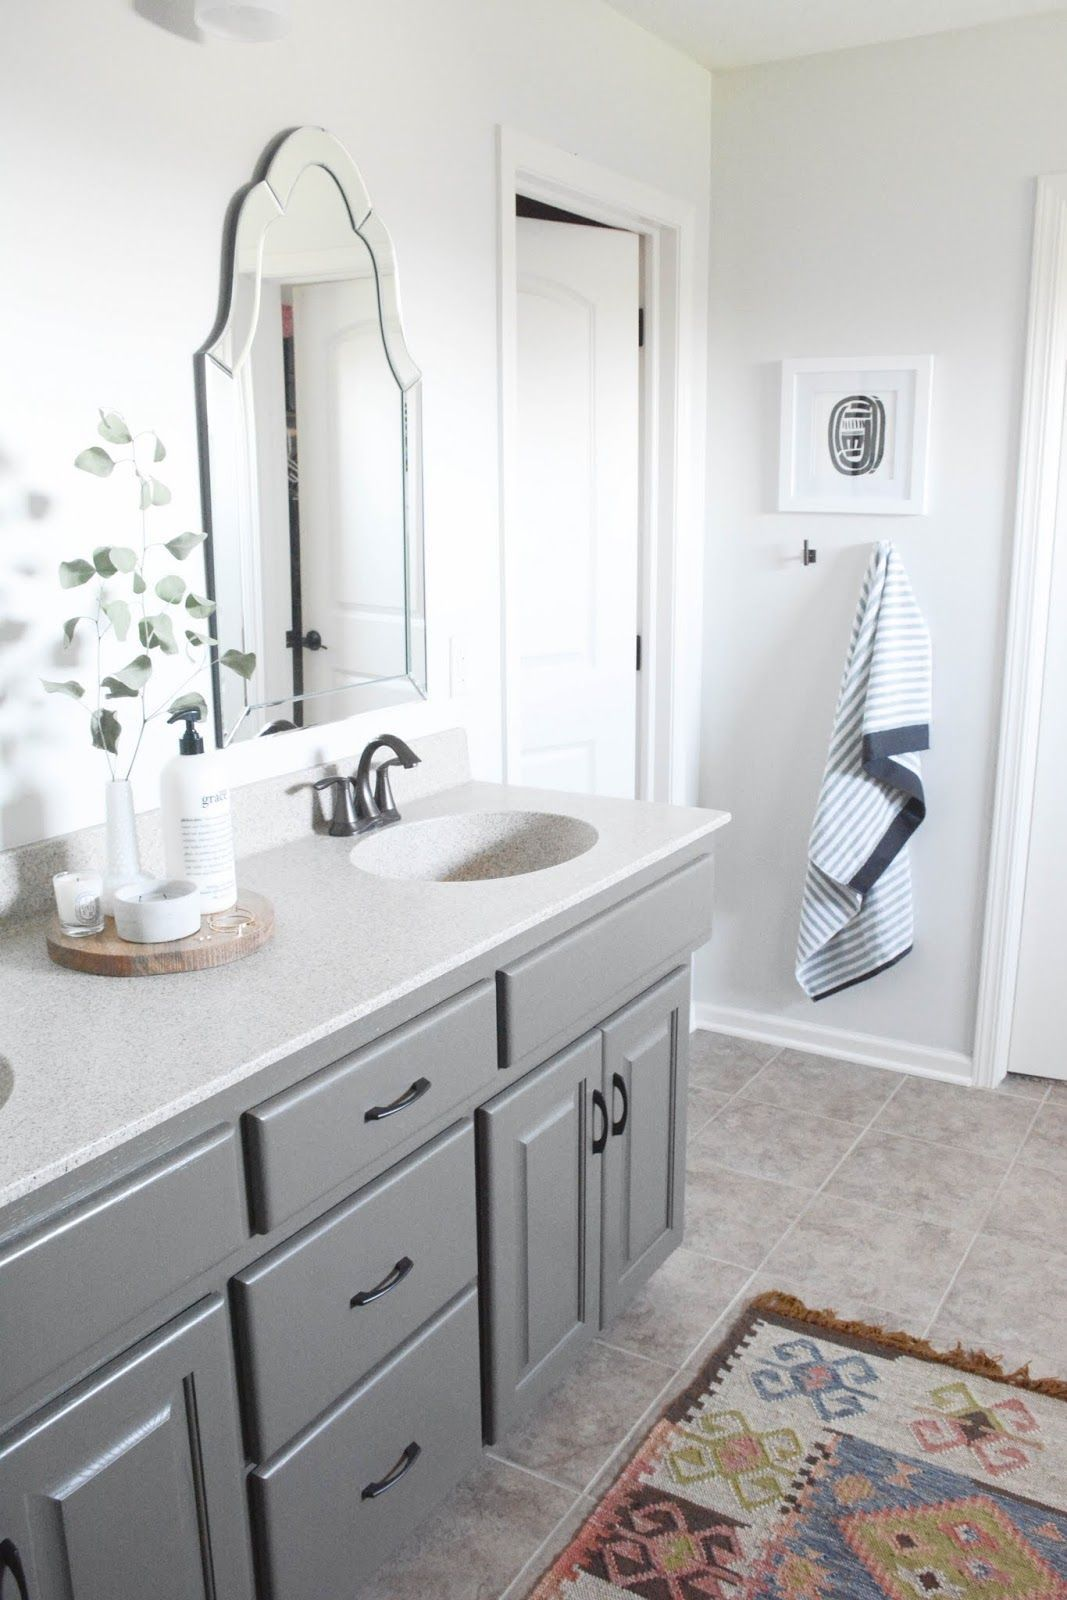 If you're seeking to freshen your bathroom with a new ...